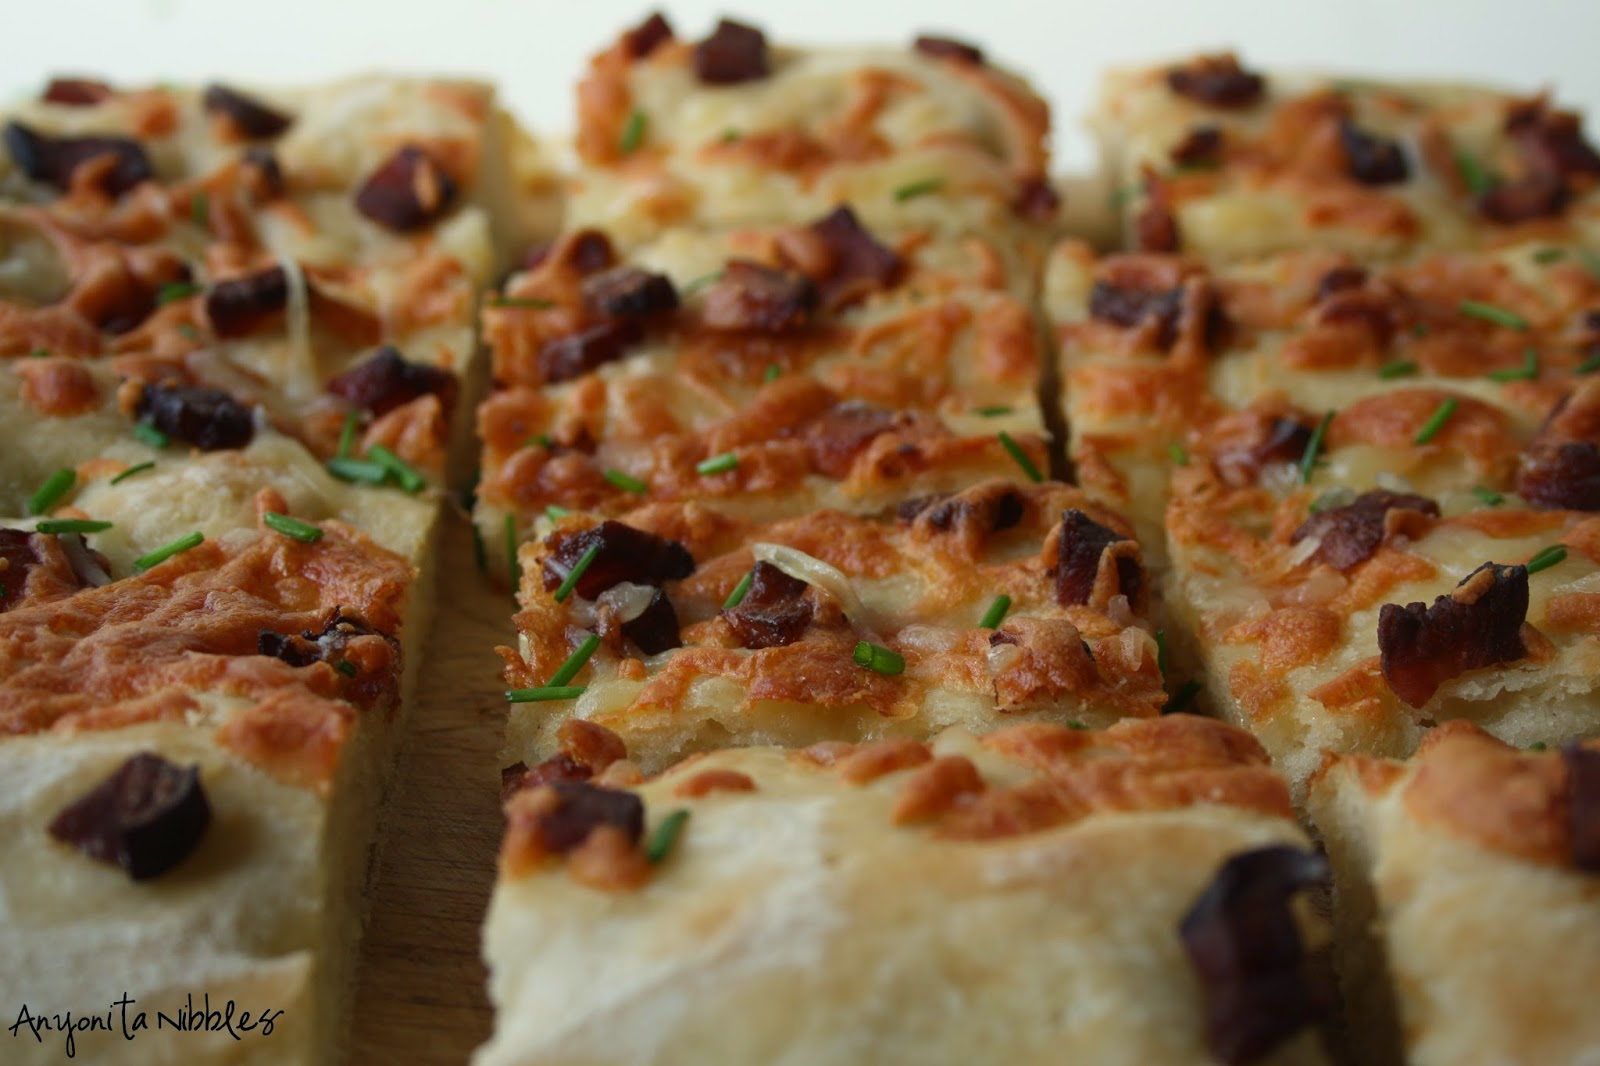 Focaccia made with potatoes and topped with cheese, chives and bacon from Anyonita Nibbles